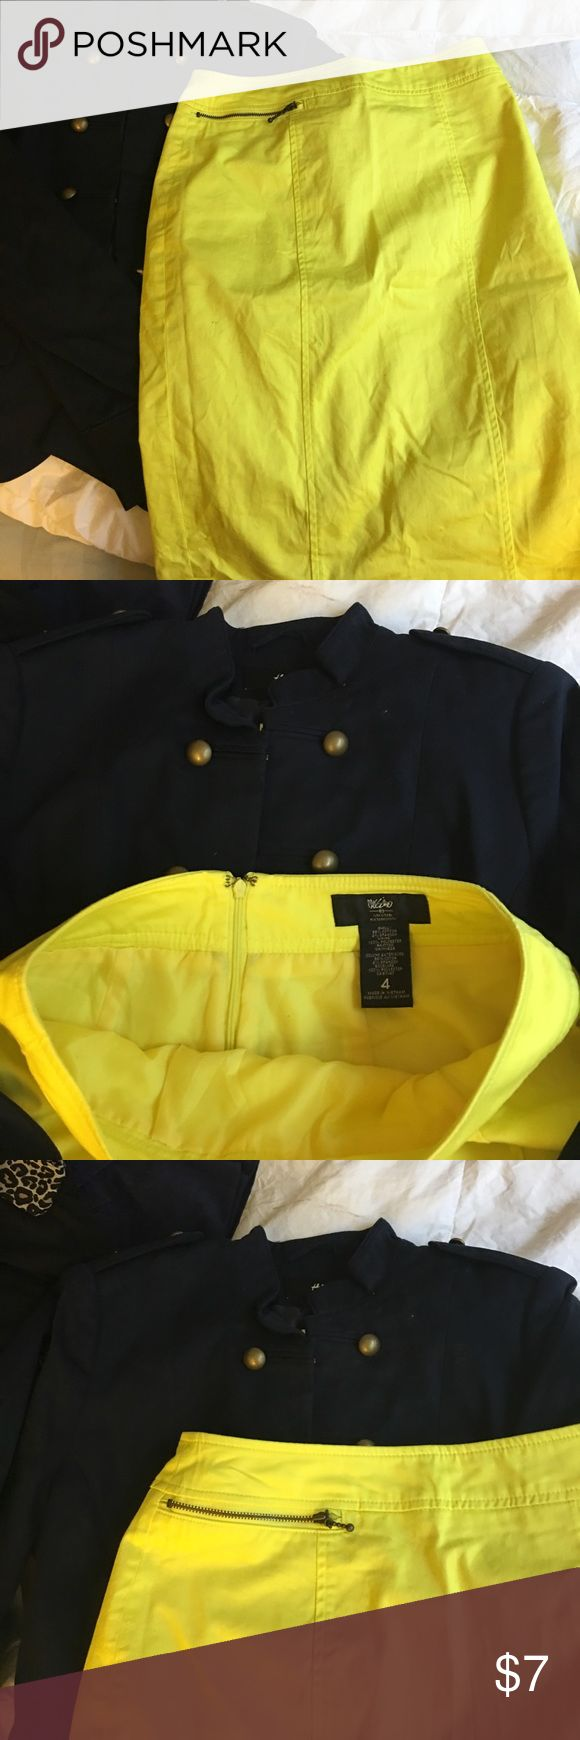 Mossimo neon yellow skirt Neon skirt..size 4 from Mossimo.. this skirt has a zipper on the right side Mossimo Supply Co. Skirts Pencil